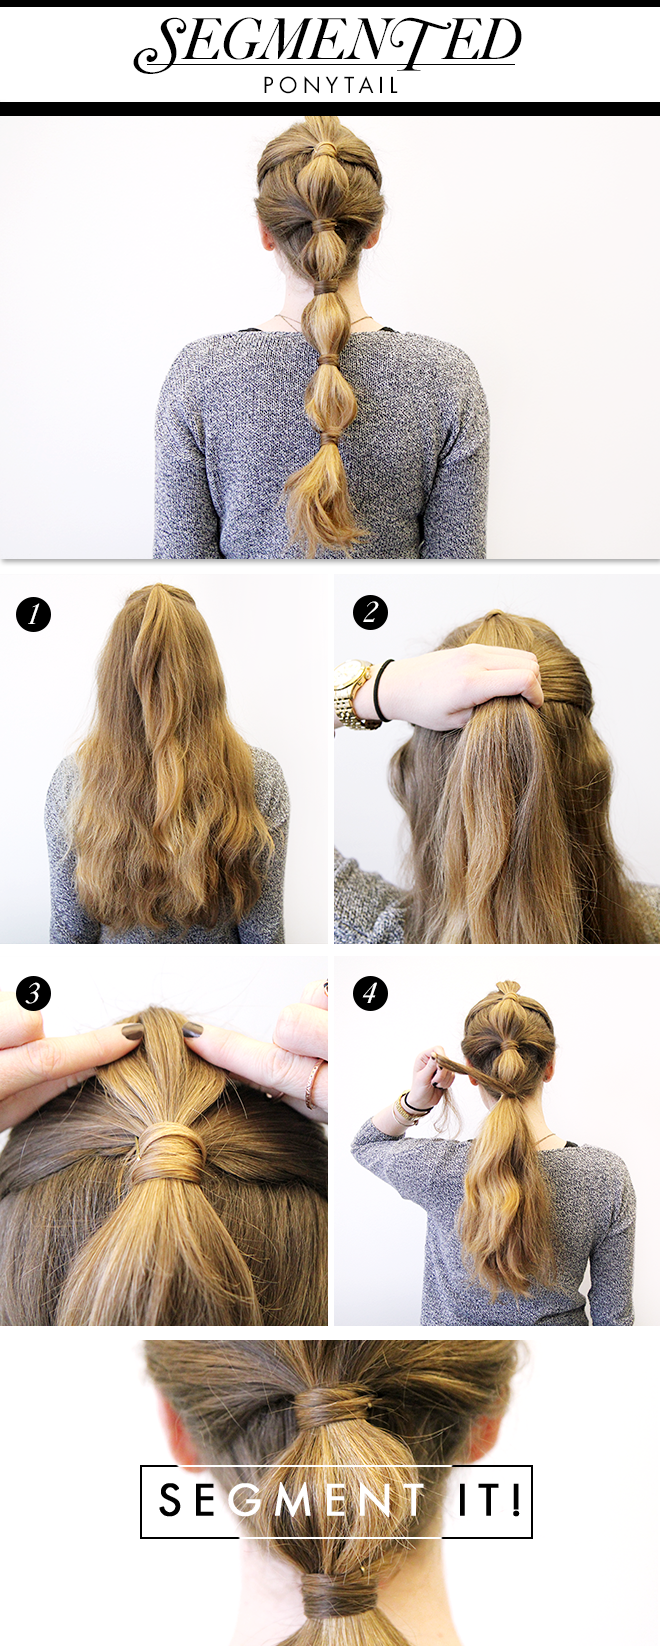 Sectioned Pony - 15 Ways to Make Cute Ponytails